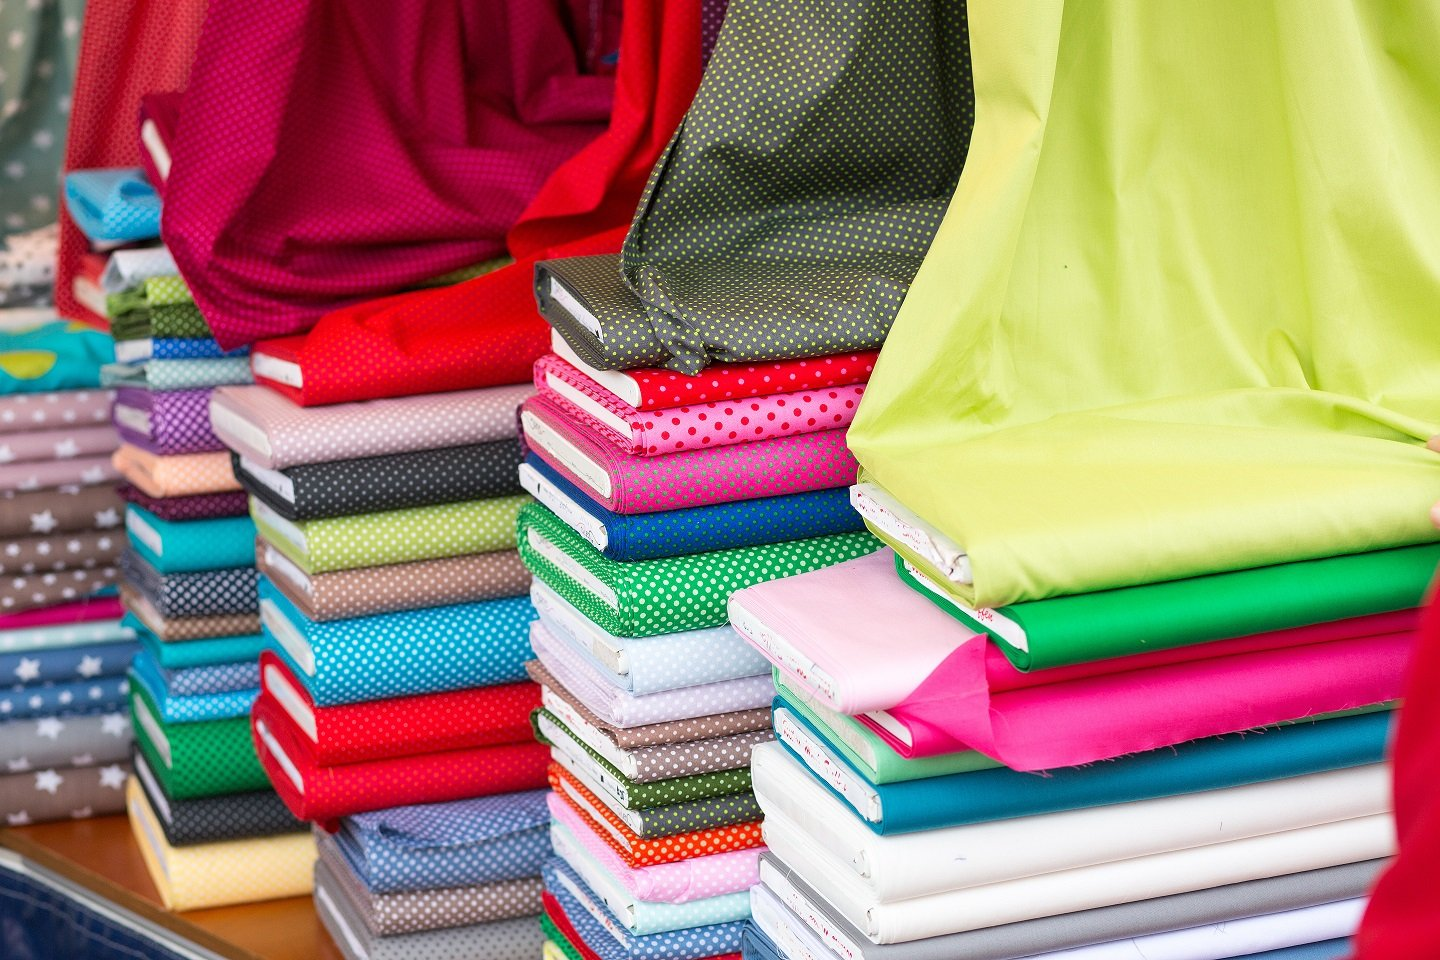 Buying Fabric for Your Fashion projects